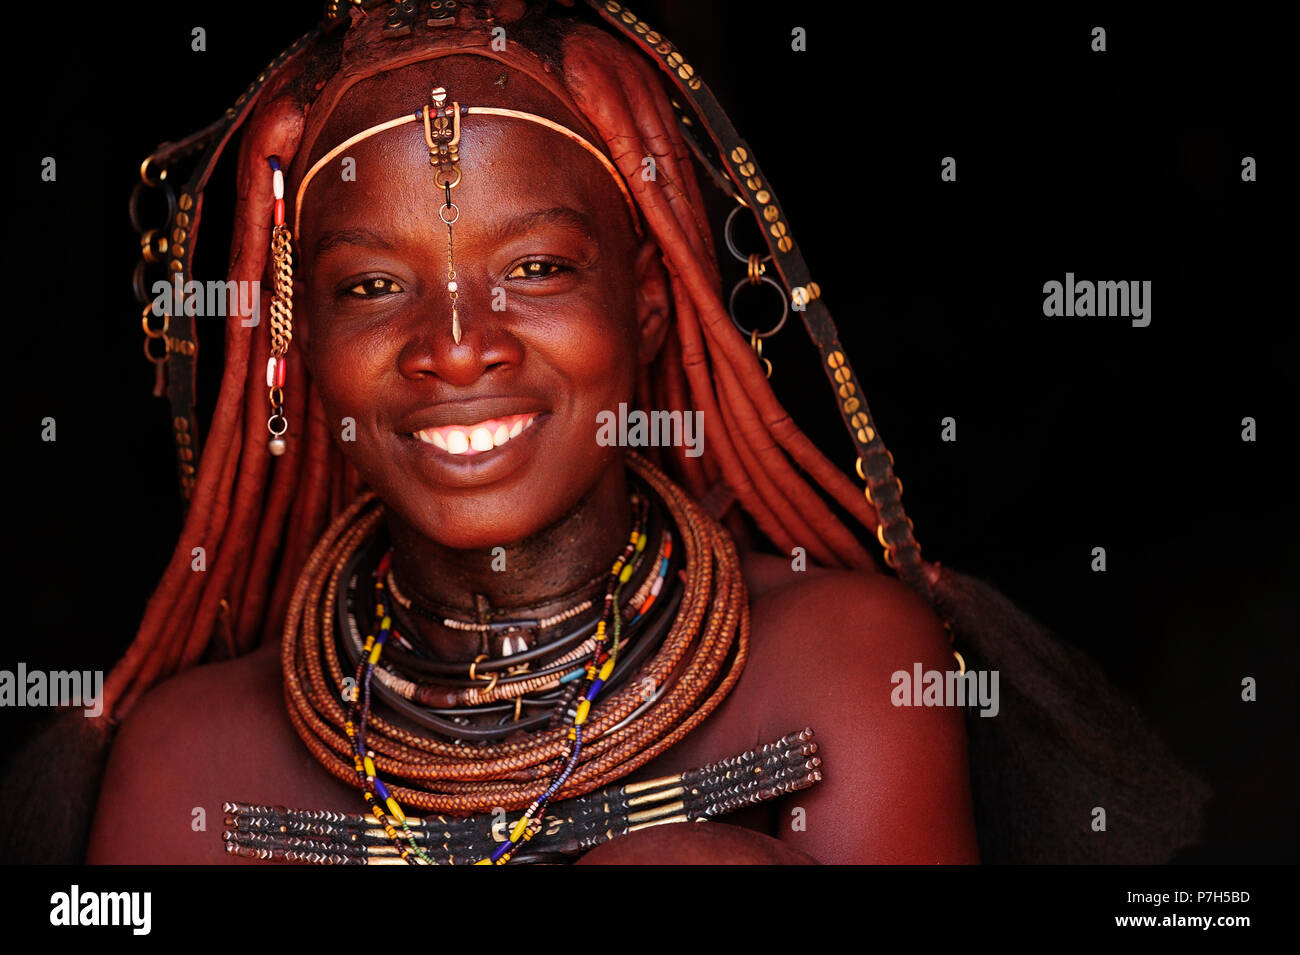 Portrait of a married Himba woman, smiling, Kunene District, Kaokoveld, Namibia - Stock Image